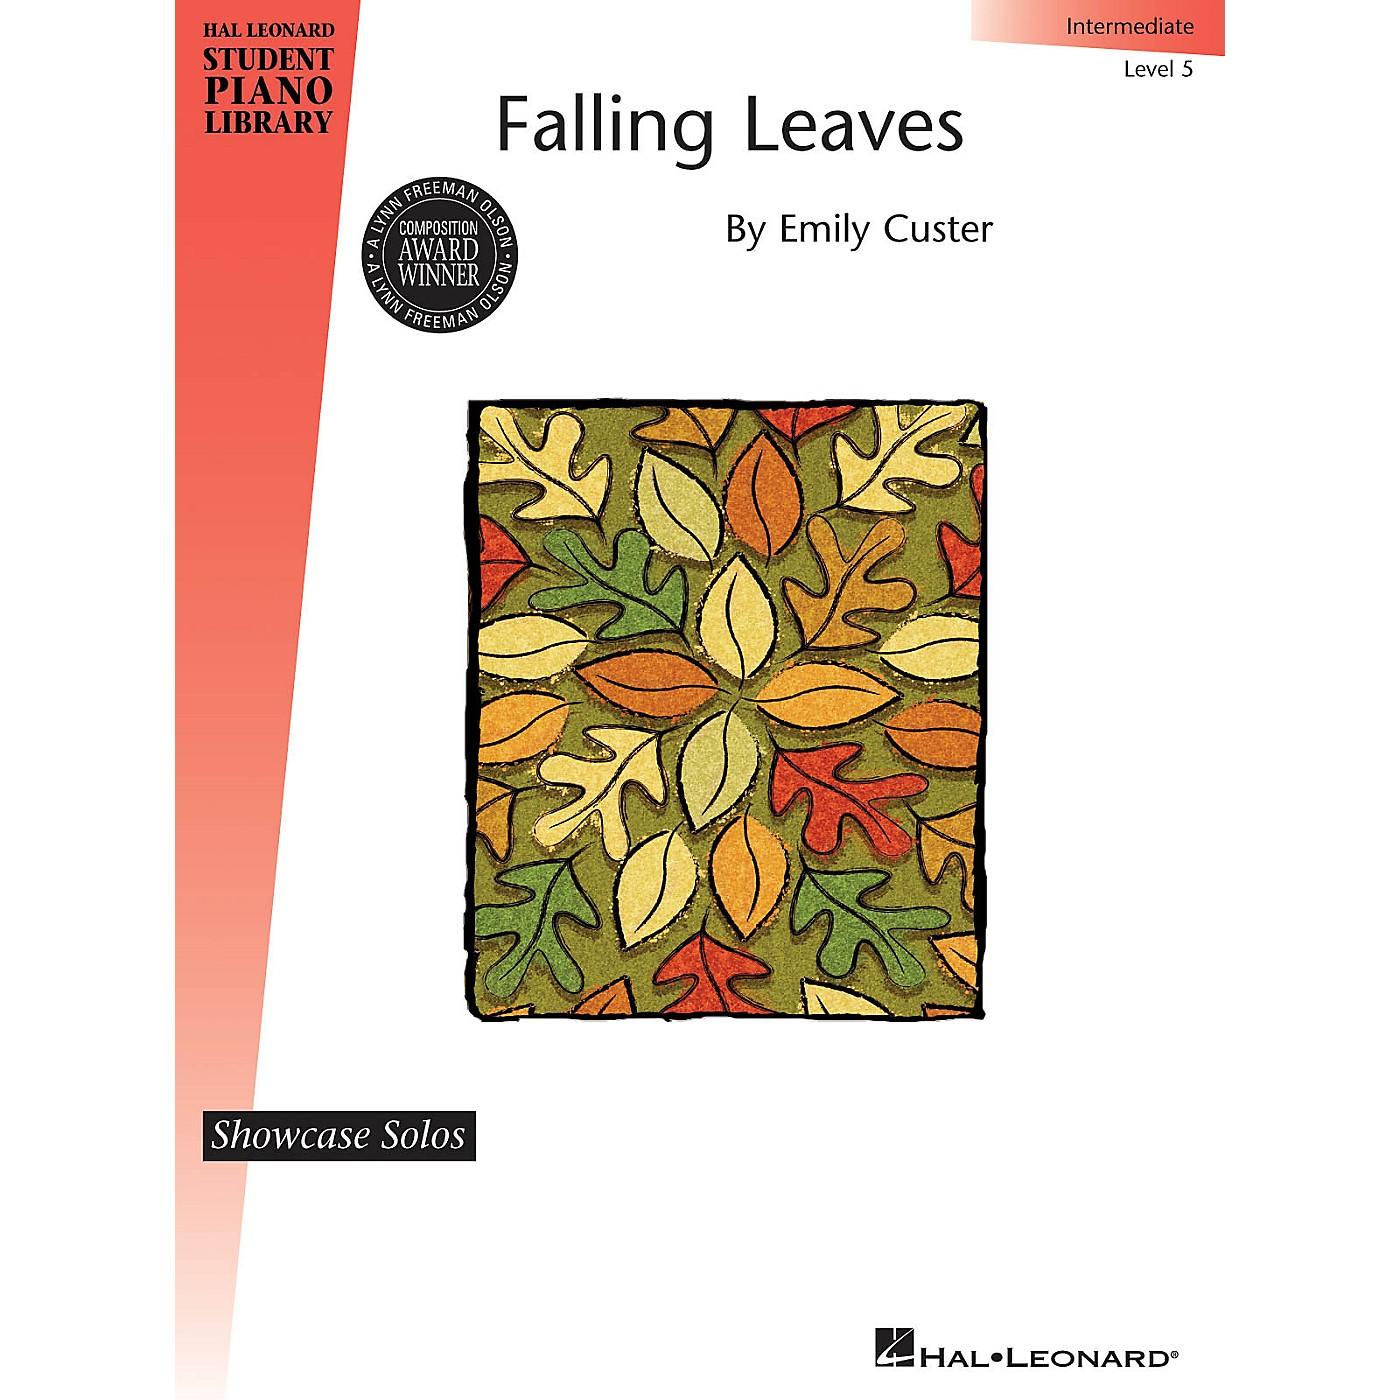 Hal Leonard Falling Leaves Piano Library Series Book by Emily Custer (Level Inter) thumbnail